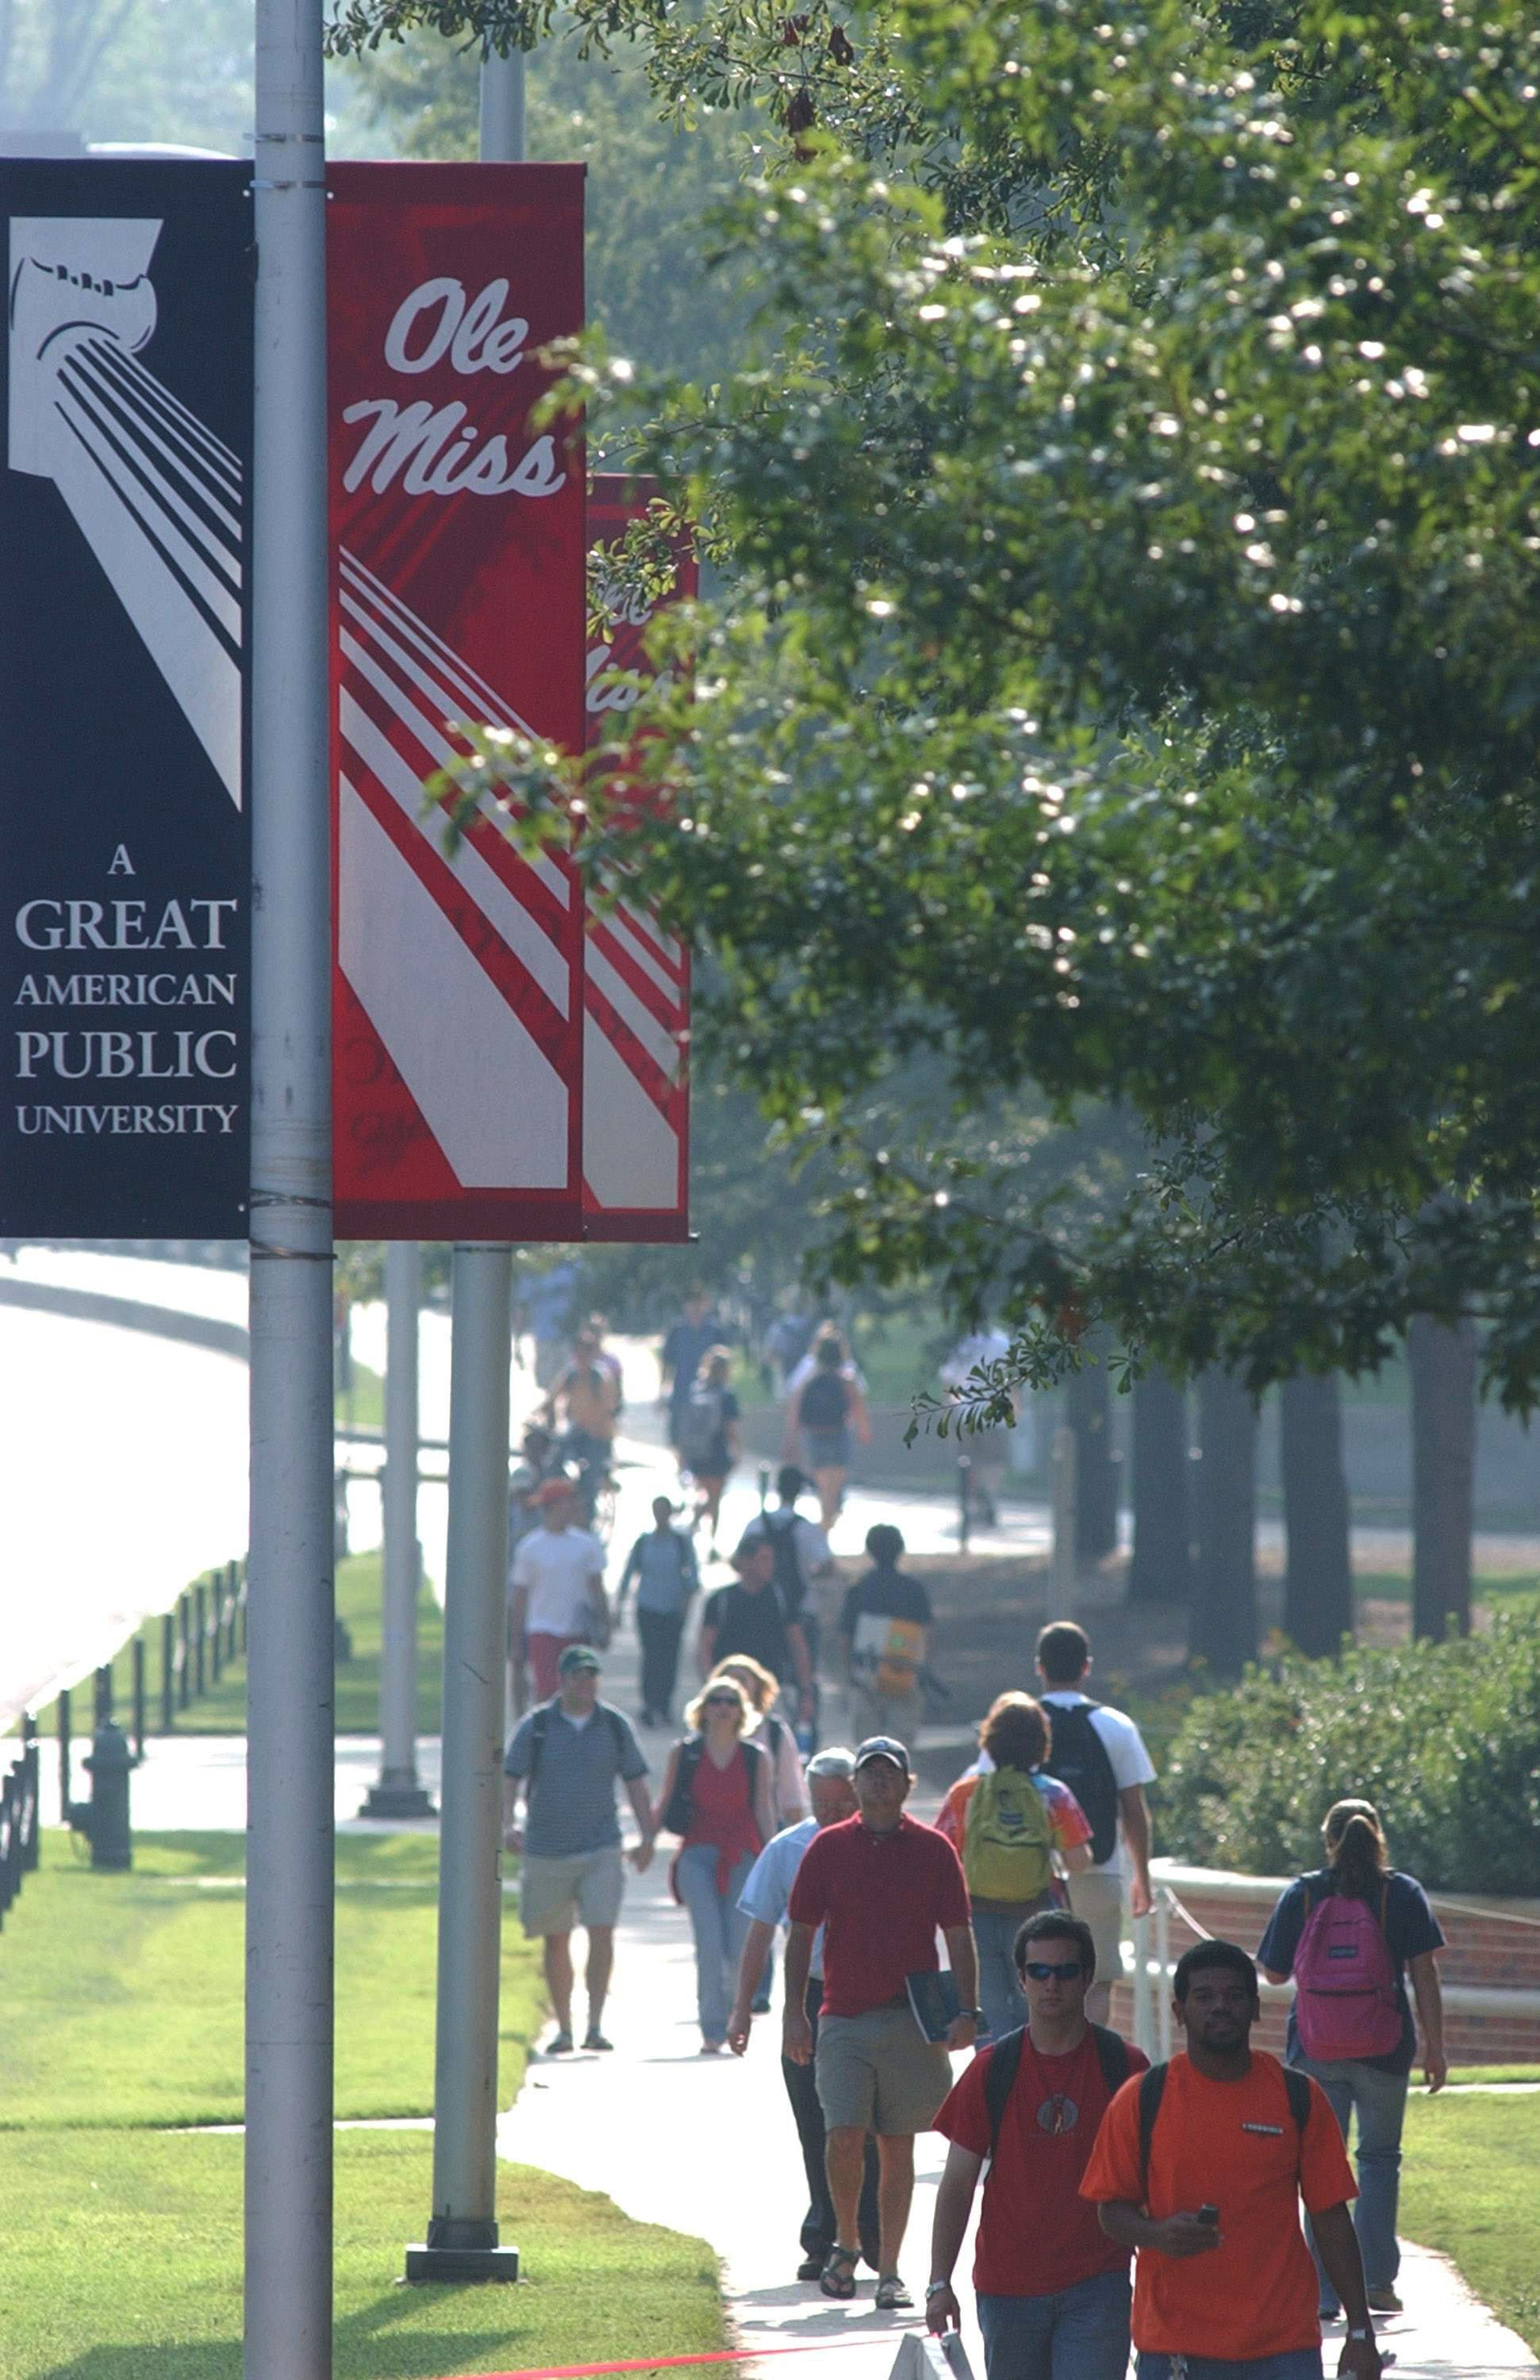 Students walk along the campus of the University of Mississippi in Oxford, Mississippi. (Photo by Bruce Newman/Getty Images)